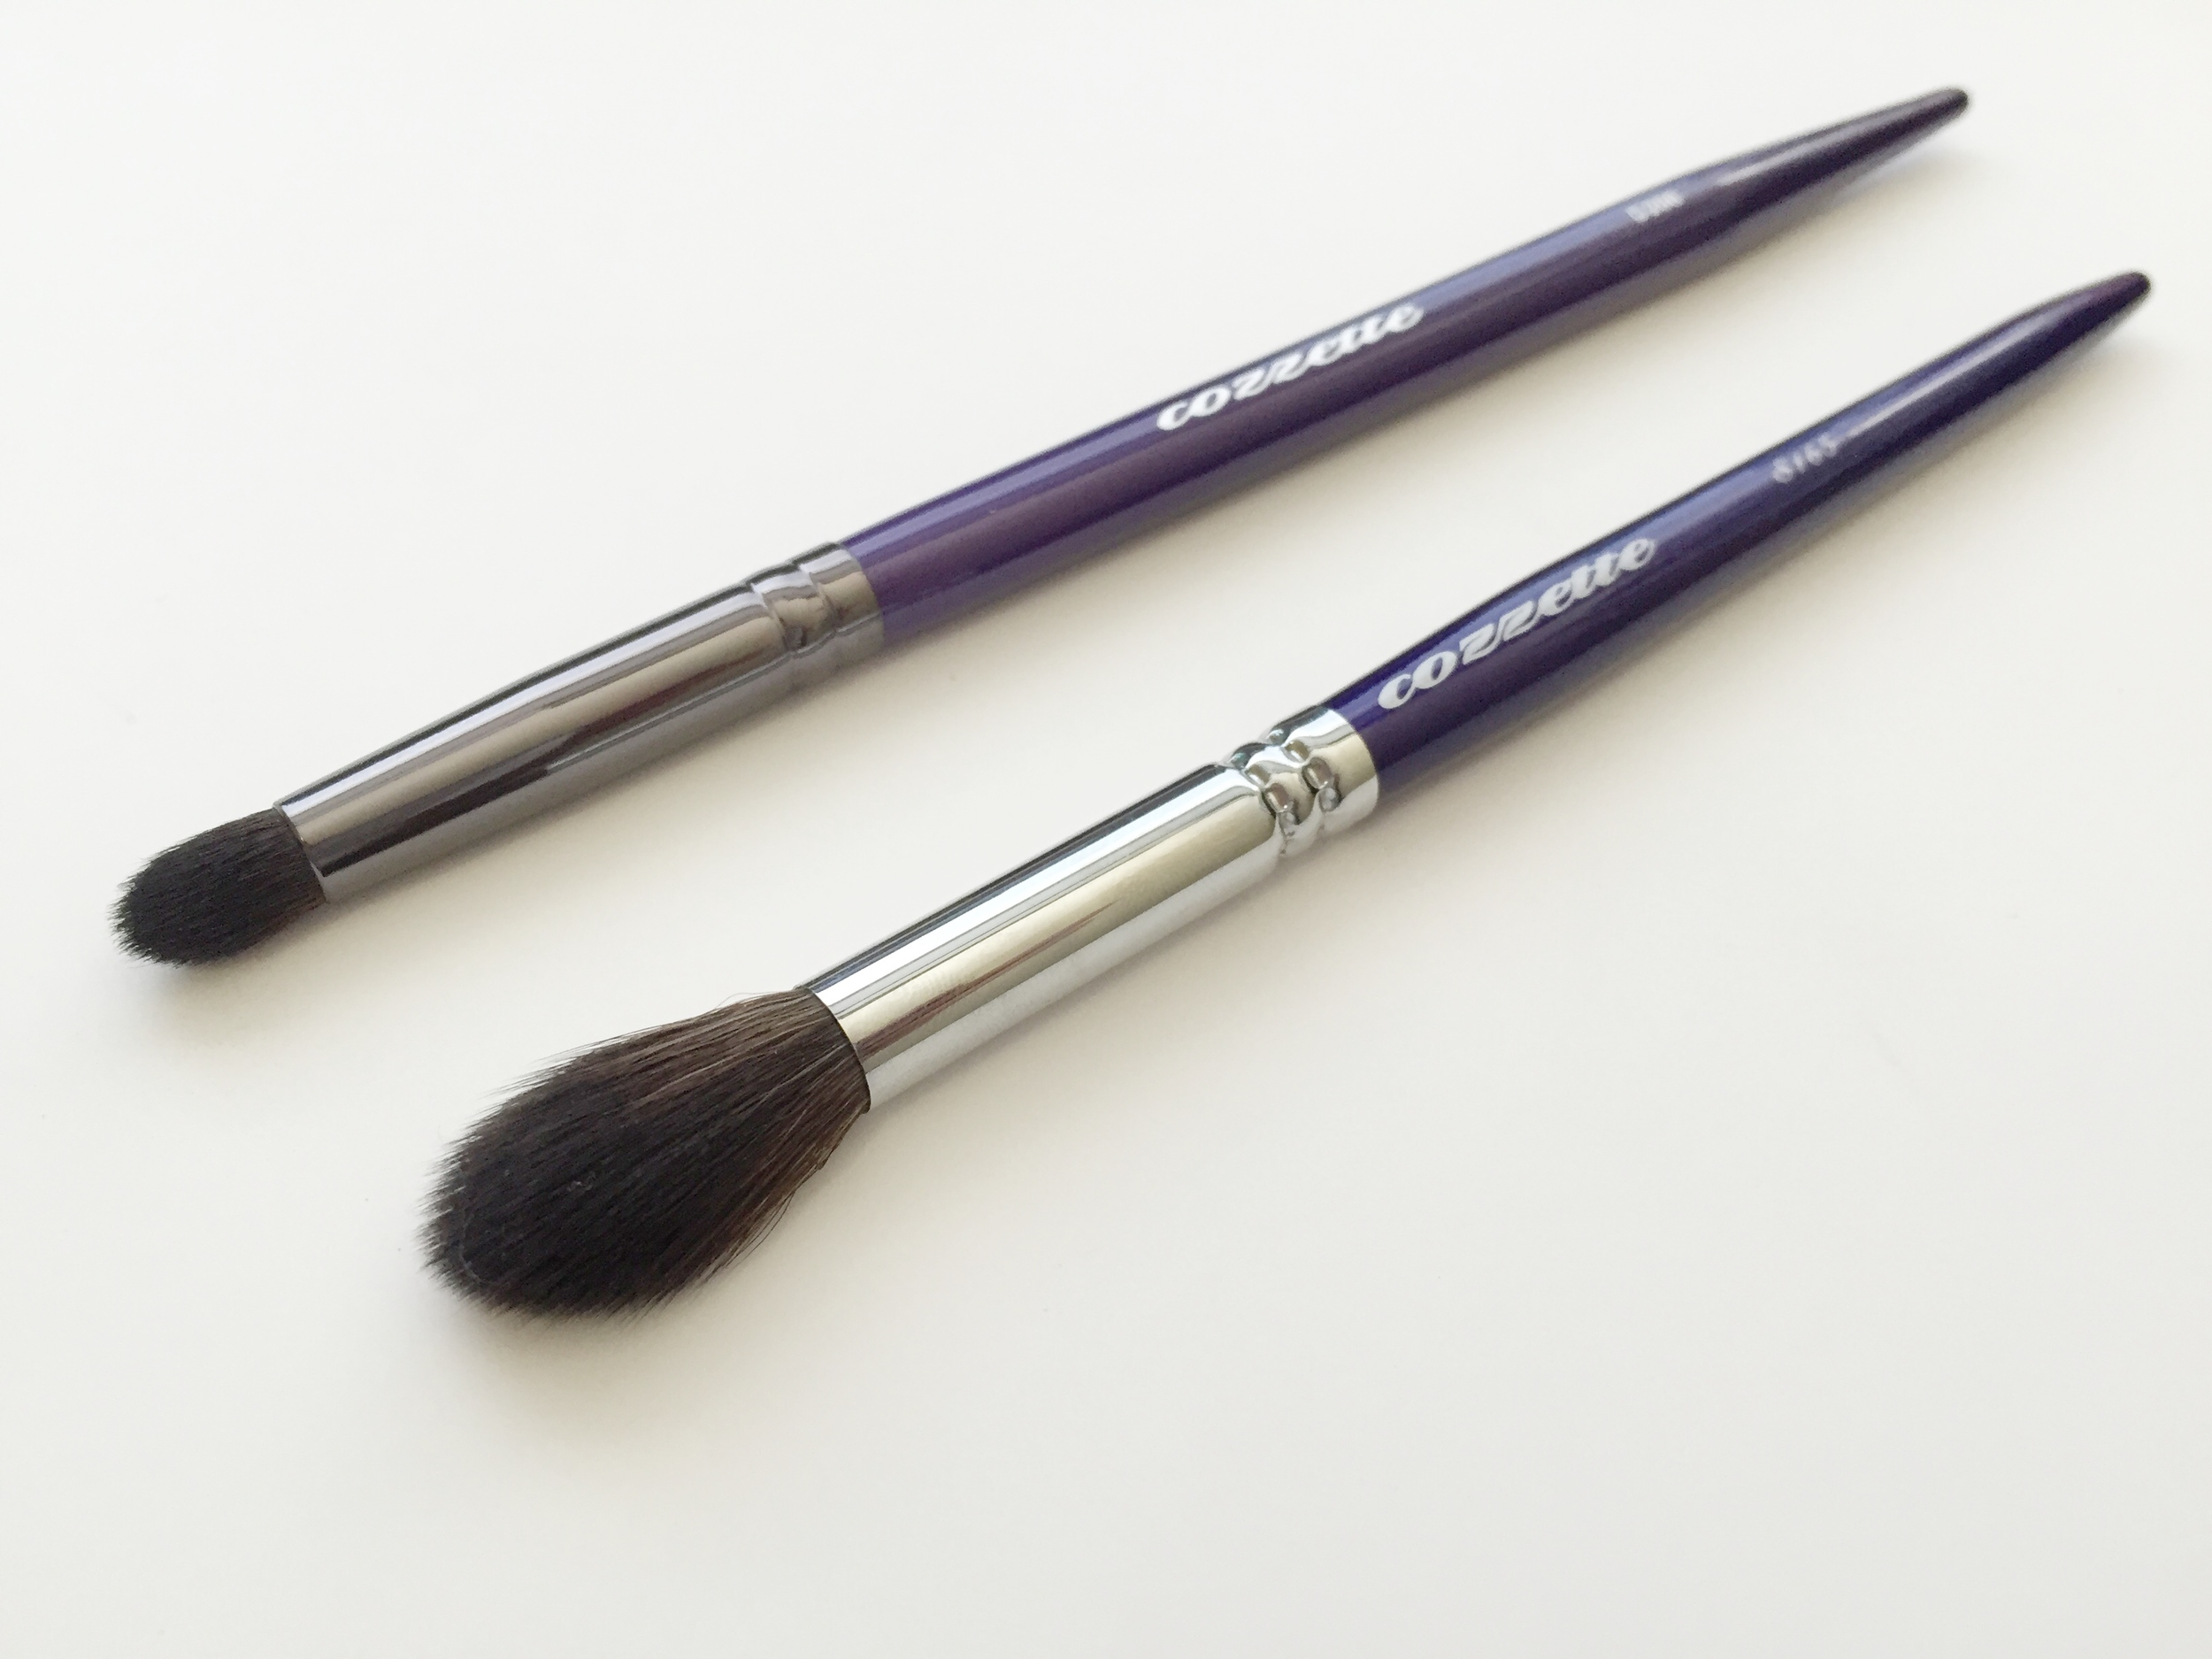 Top: D200 Bullet Brush |  Bottom: S165 Large Eye Contour Brush